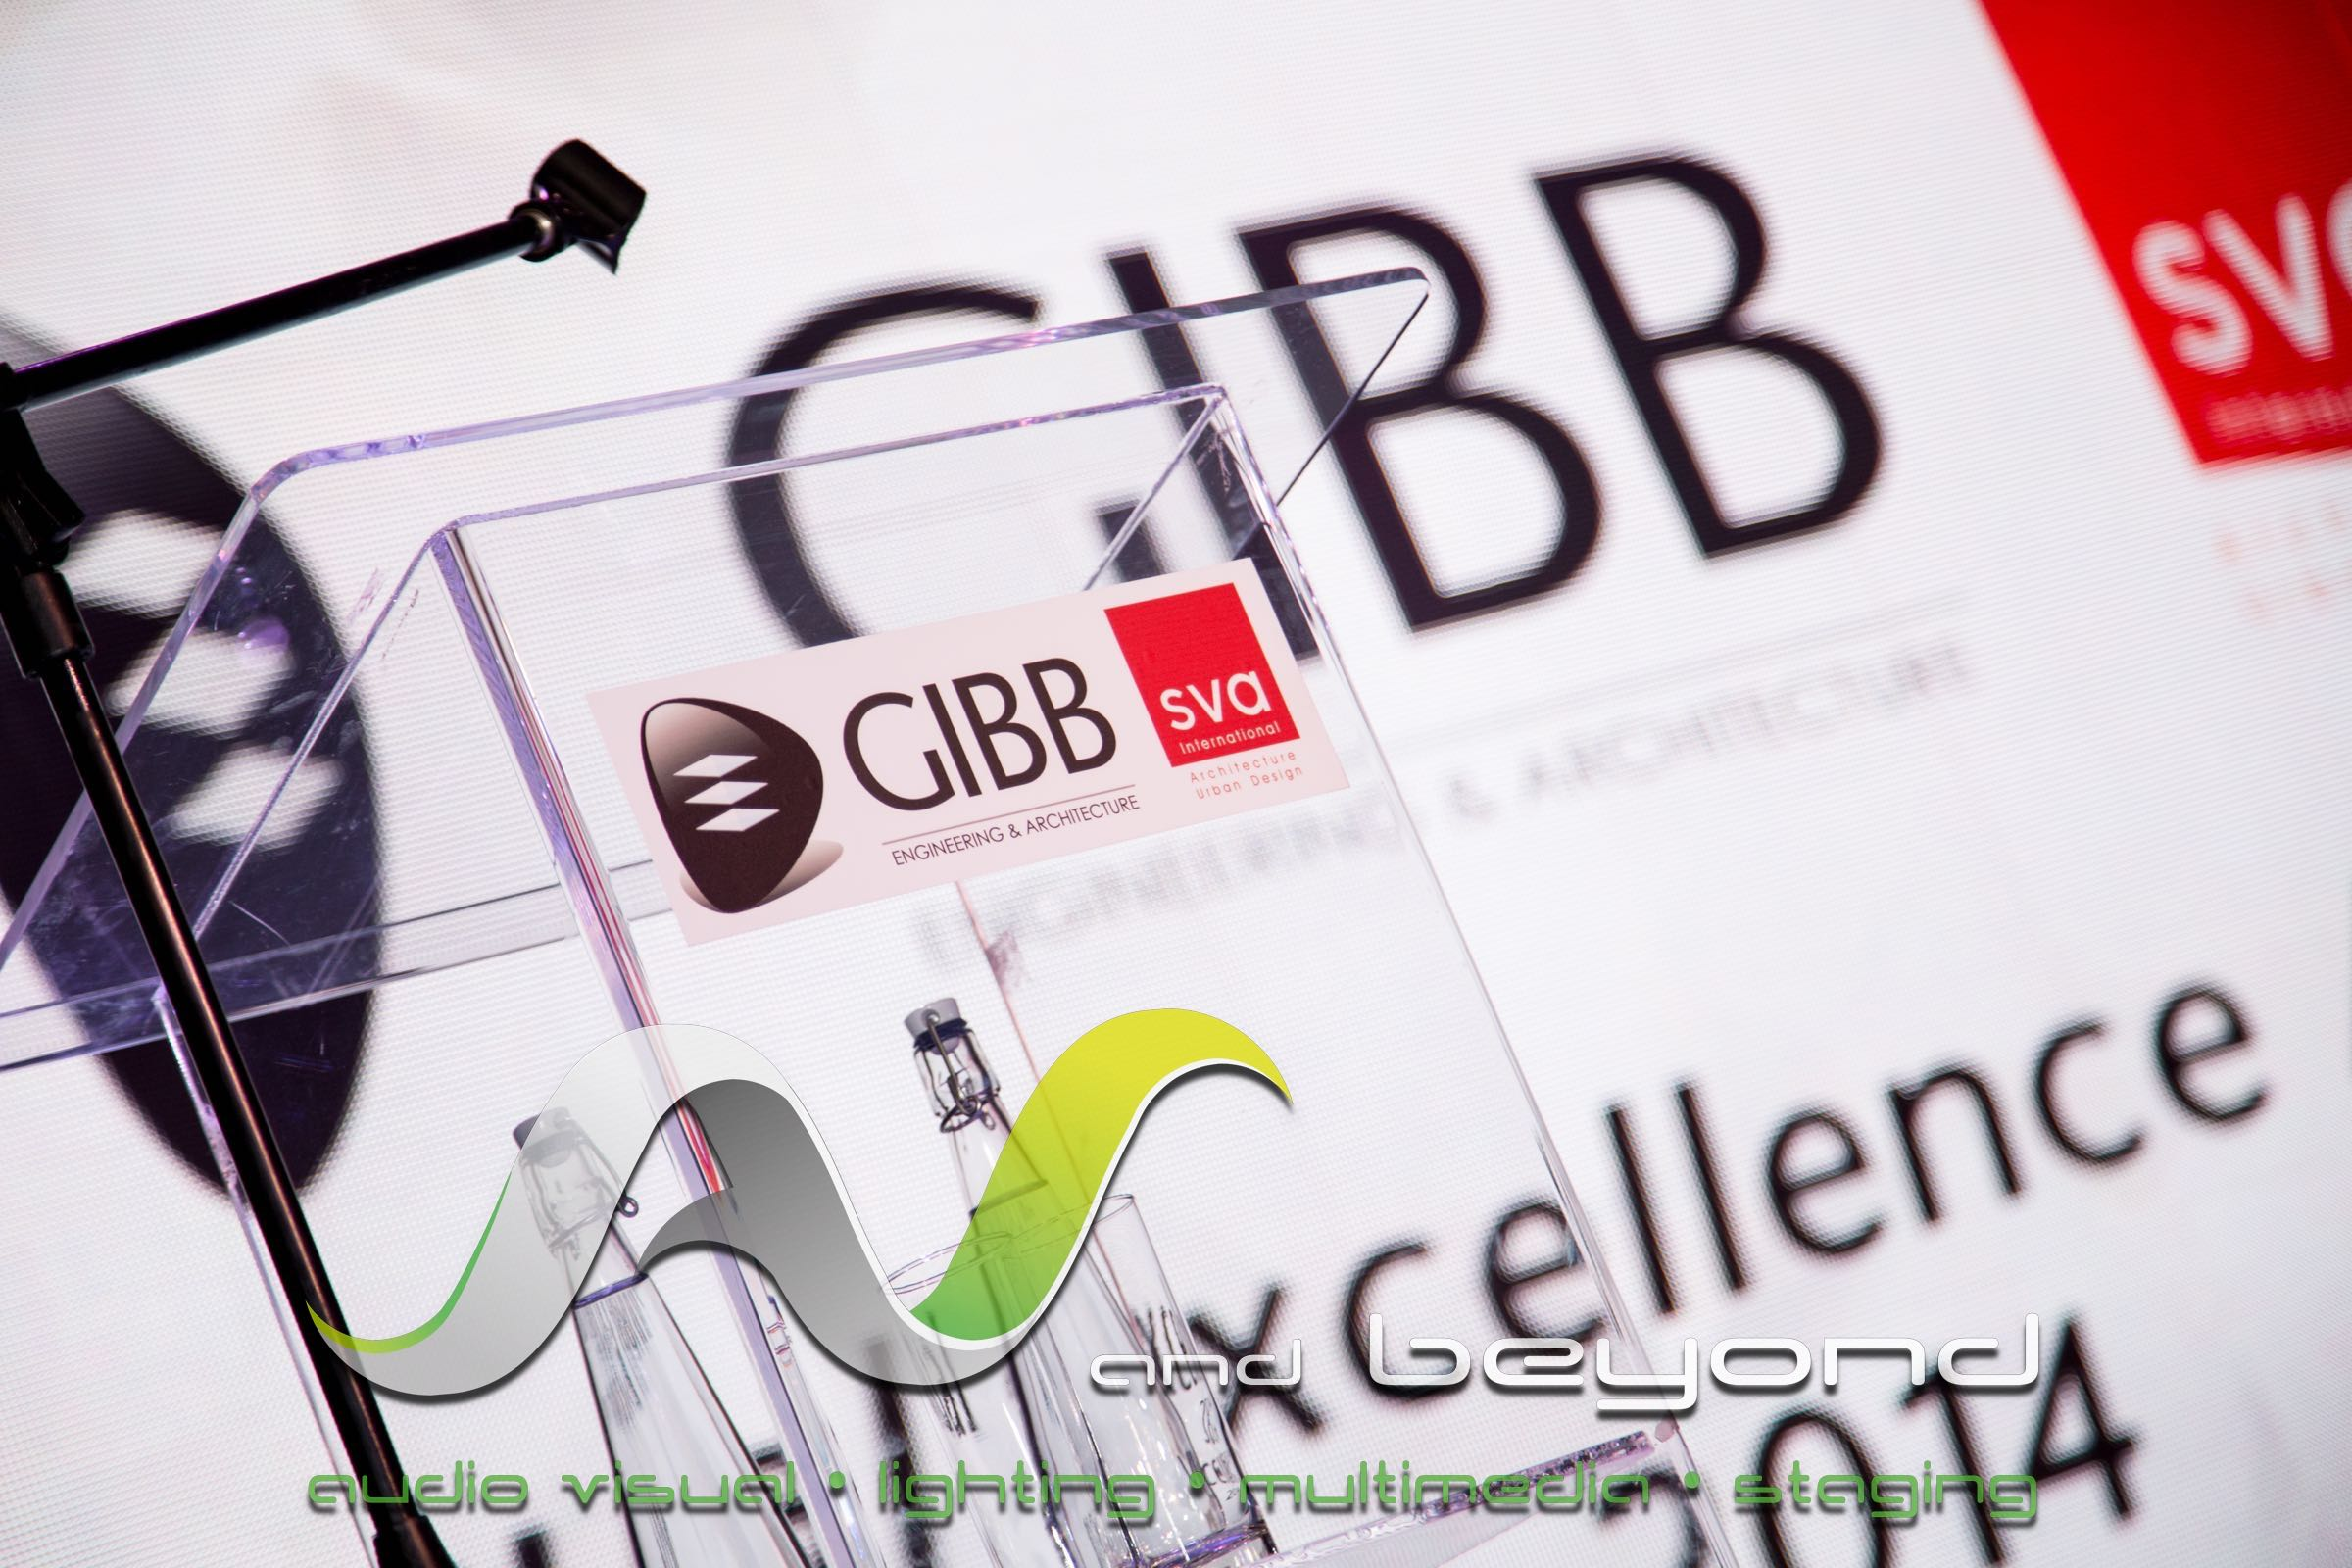 GIBB Excellence Awards 2014-141108-LRG-205 copy.jpg